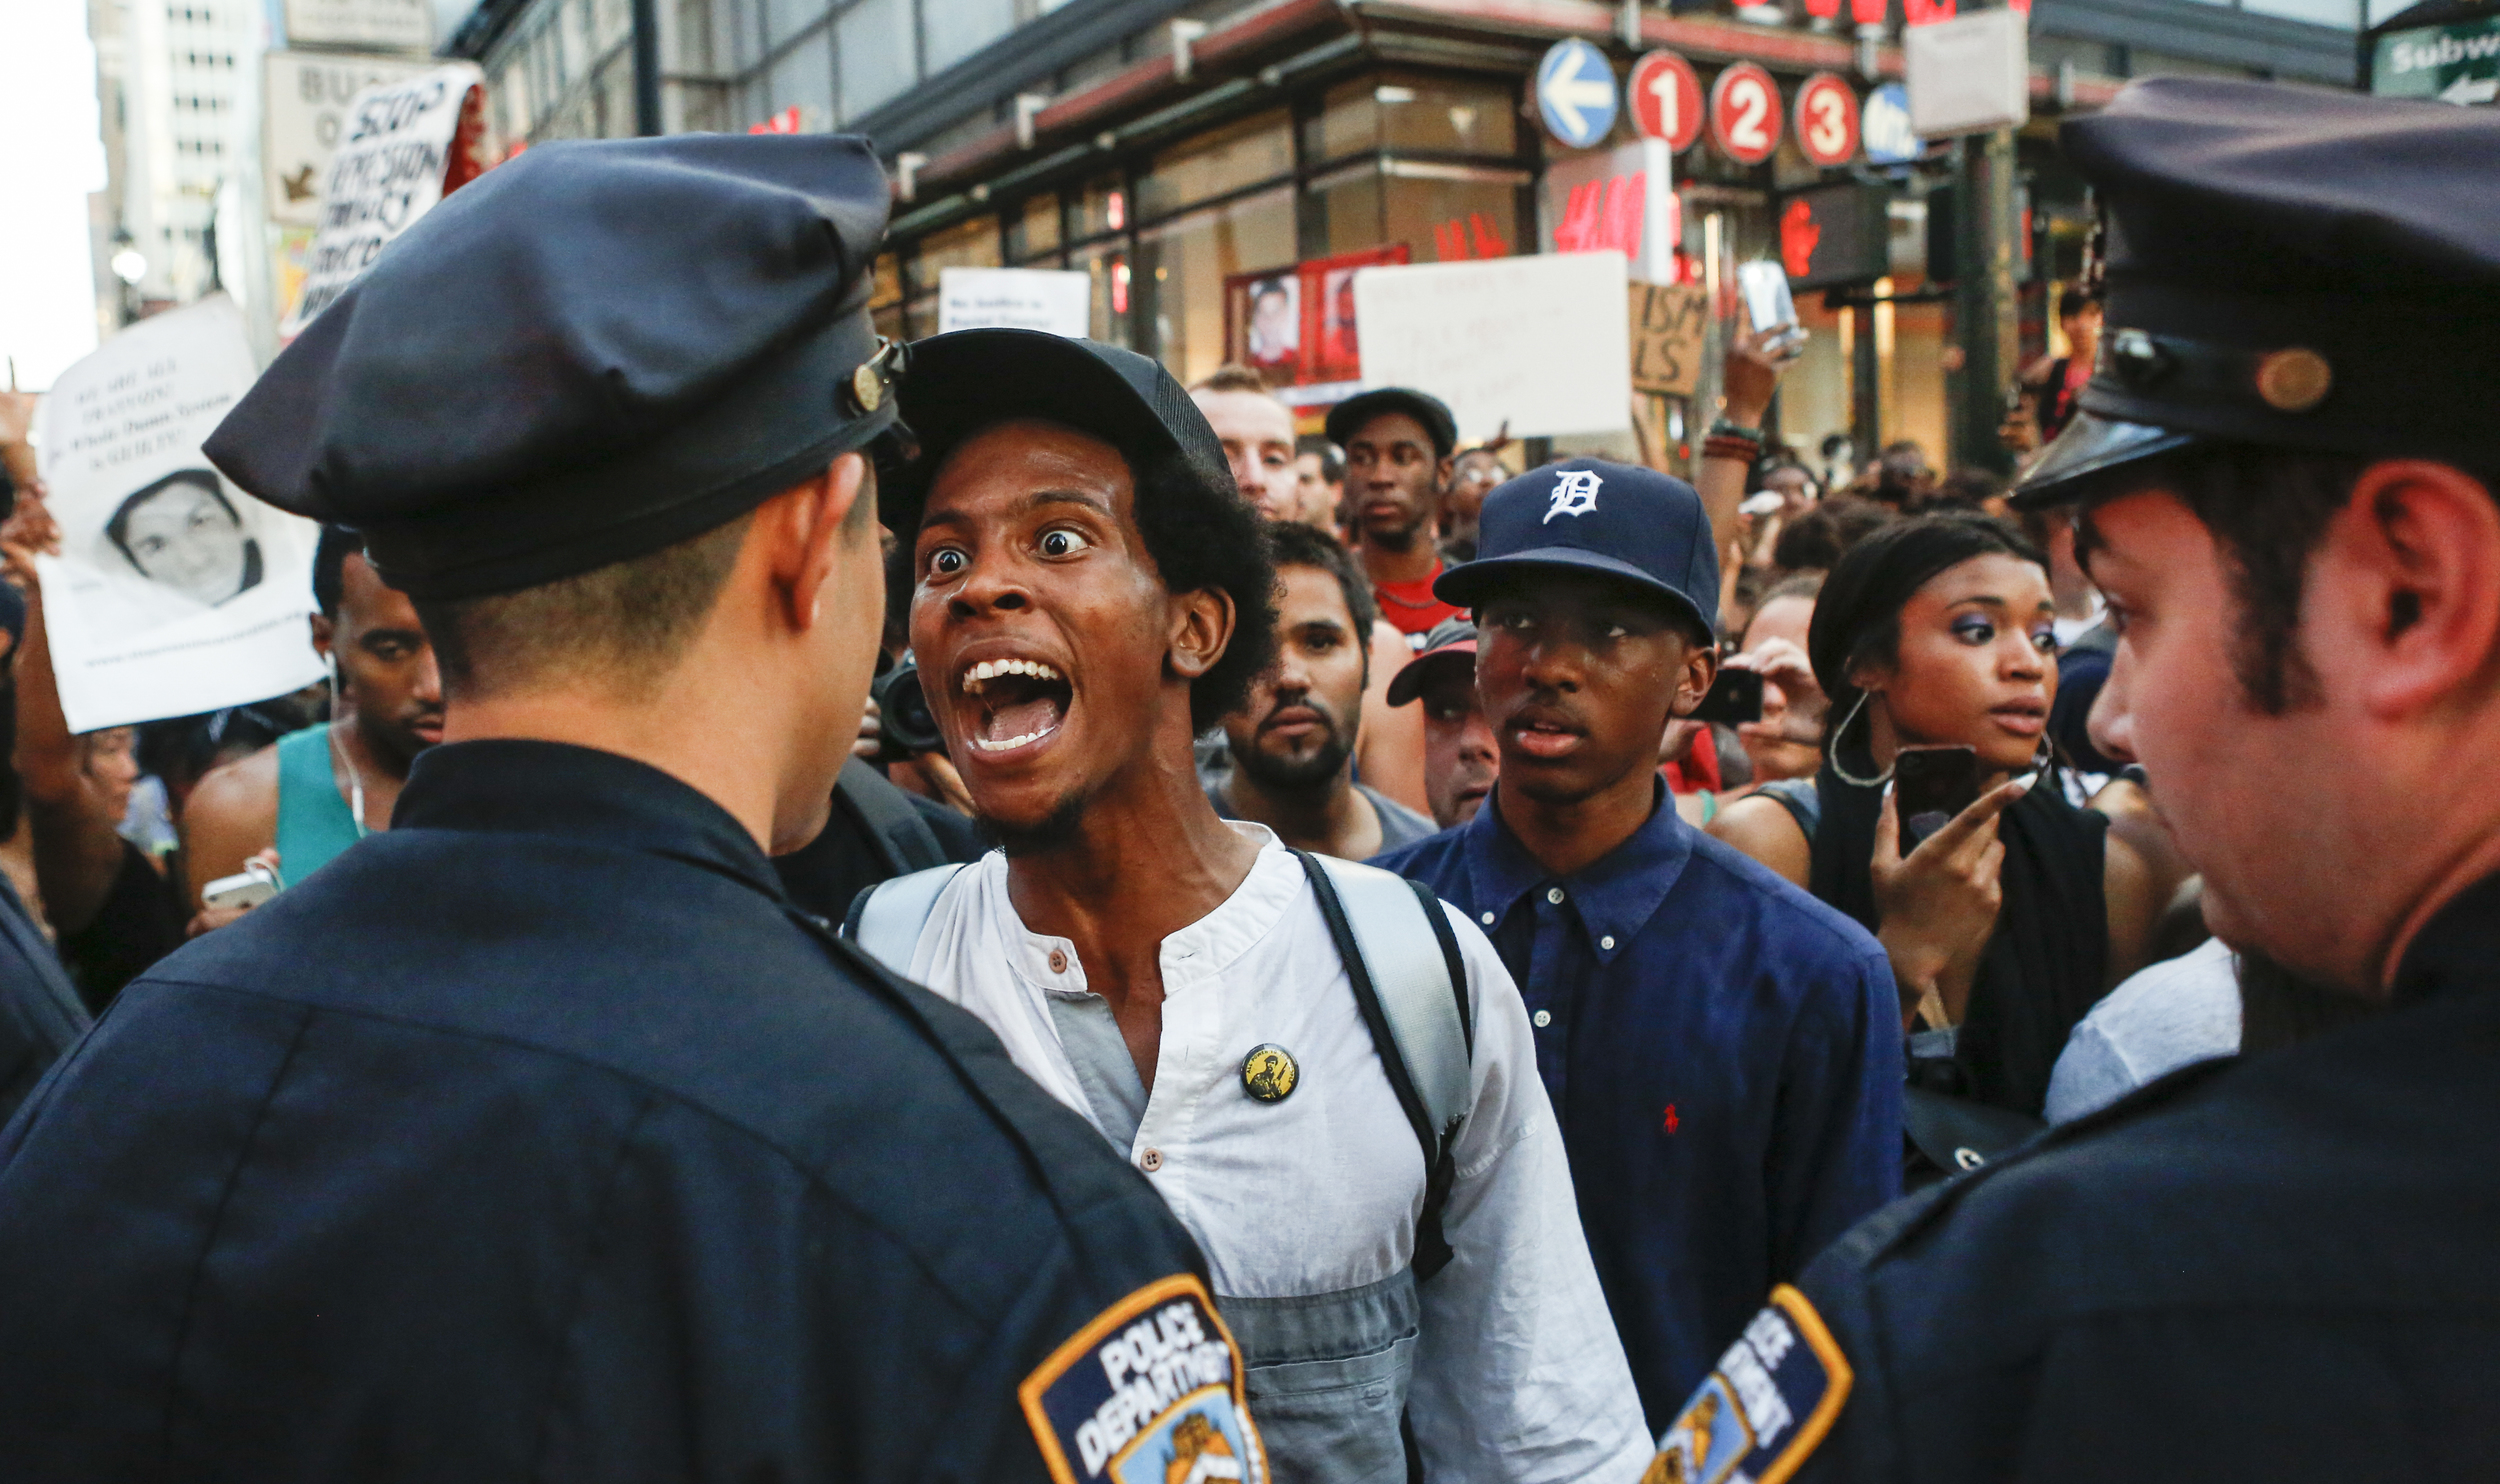 A day after George Zimmerman was acquitted of all charges in the shooting death of Trayvon Martin, a man argues with New York City police officers at West 34th Street on July 14, 2013. He and thousands of other protesters who questioned the verdict of the trial blocked traffic as they made their way from Union Square to Times Square.